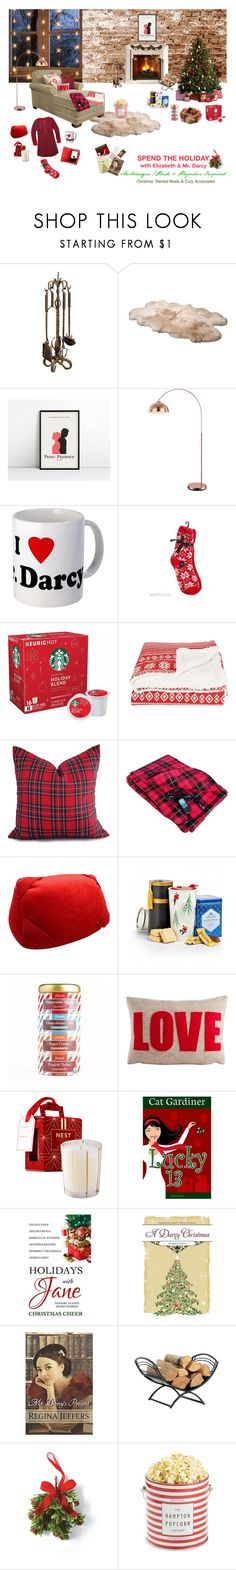 Austenesque/Pride & Prejudice Holiday Themed Reads & Cozy Accessories by nshubrick-1 on Polyvore featuring MeMoi, UGG Australia, The Hampton Popcorn Company, GlucksteinHome, Sephora Collection, Frontgate, ShelterLogic, Alexandra Ferguson, Zhena's Gypsy Tea and LUCKY 13